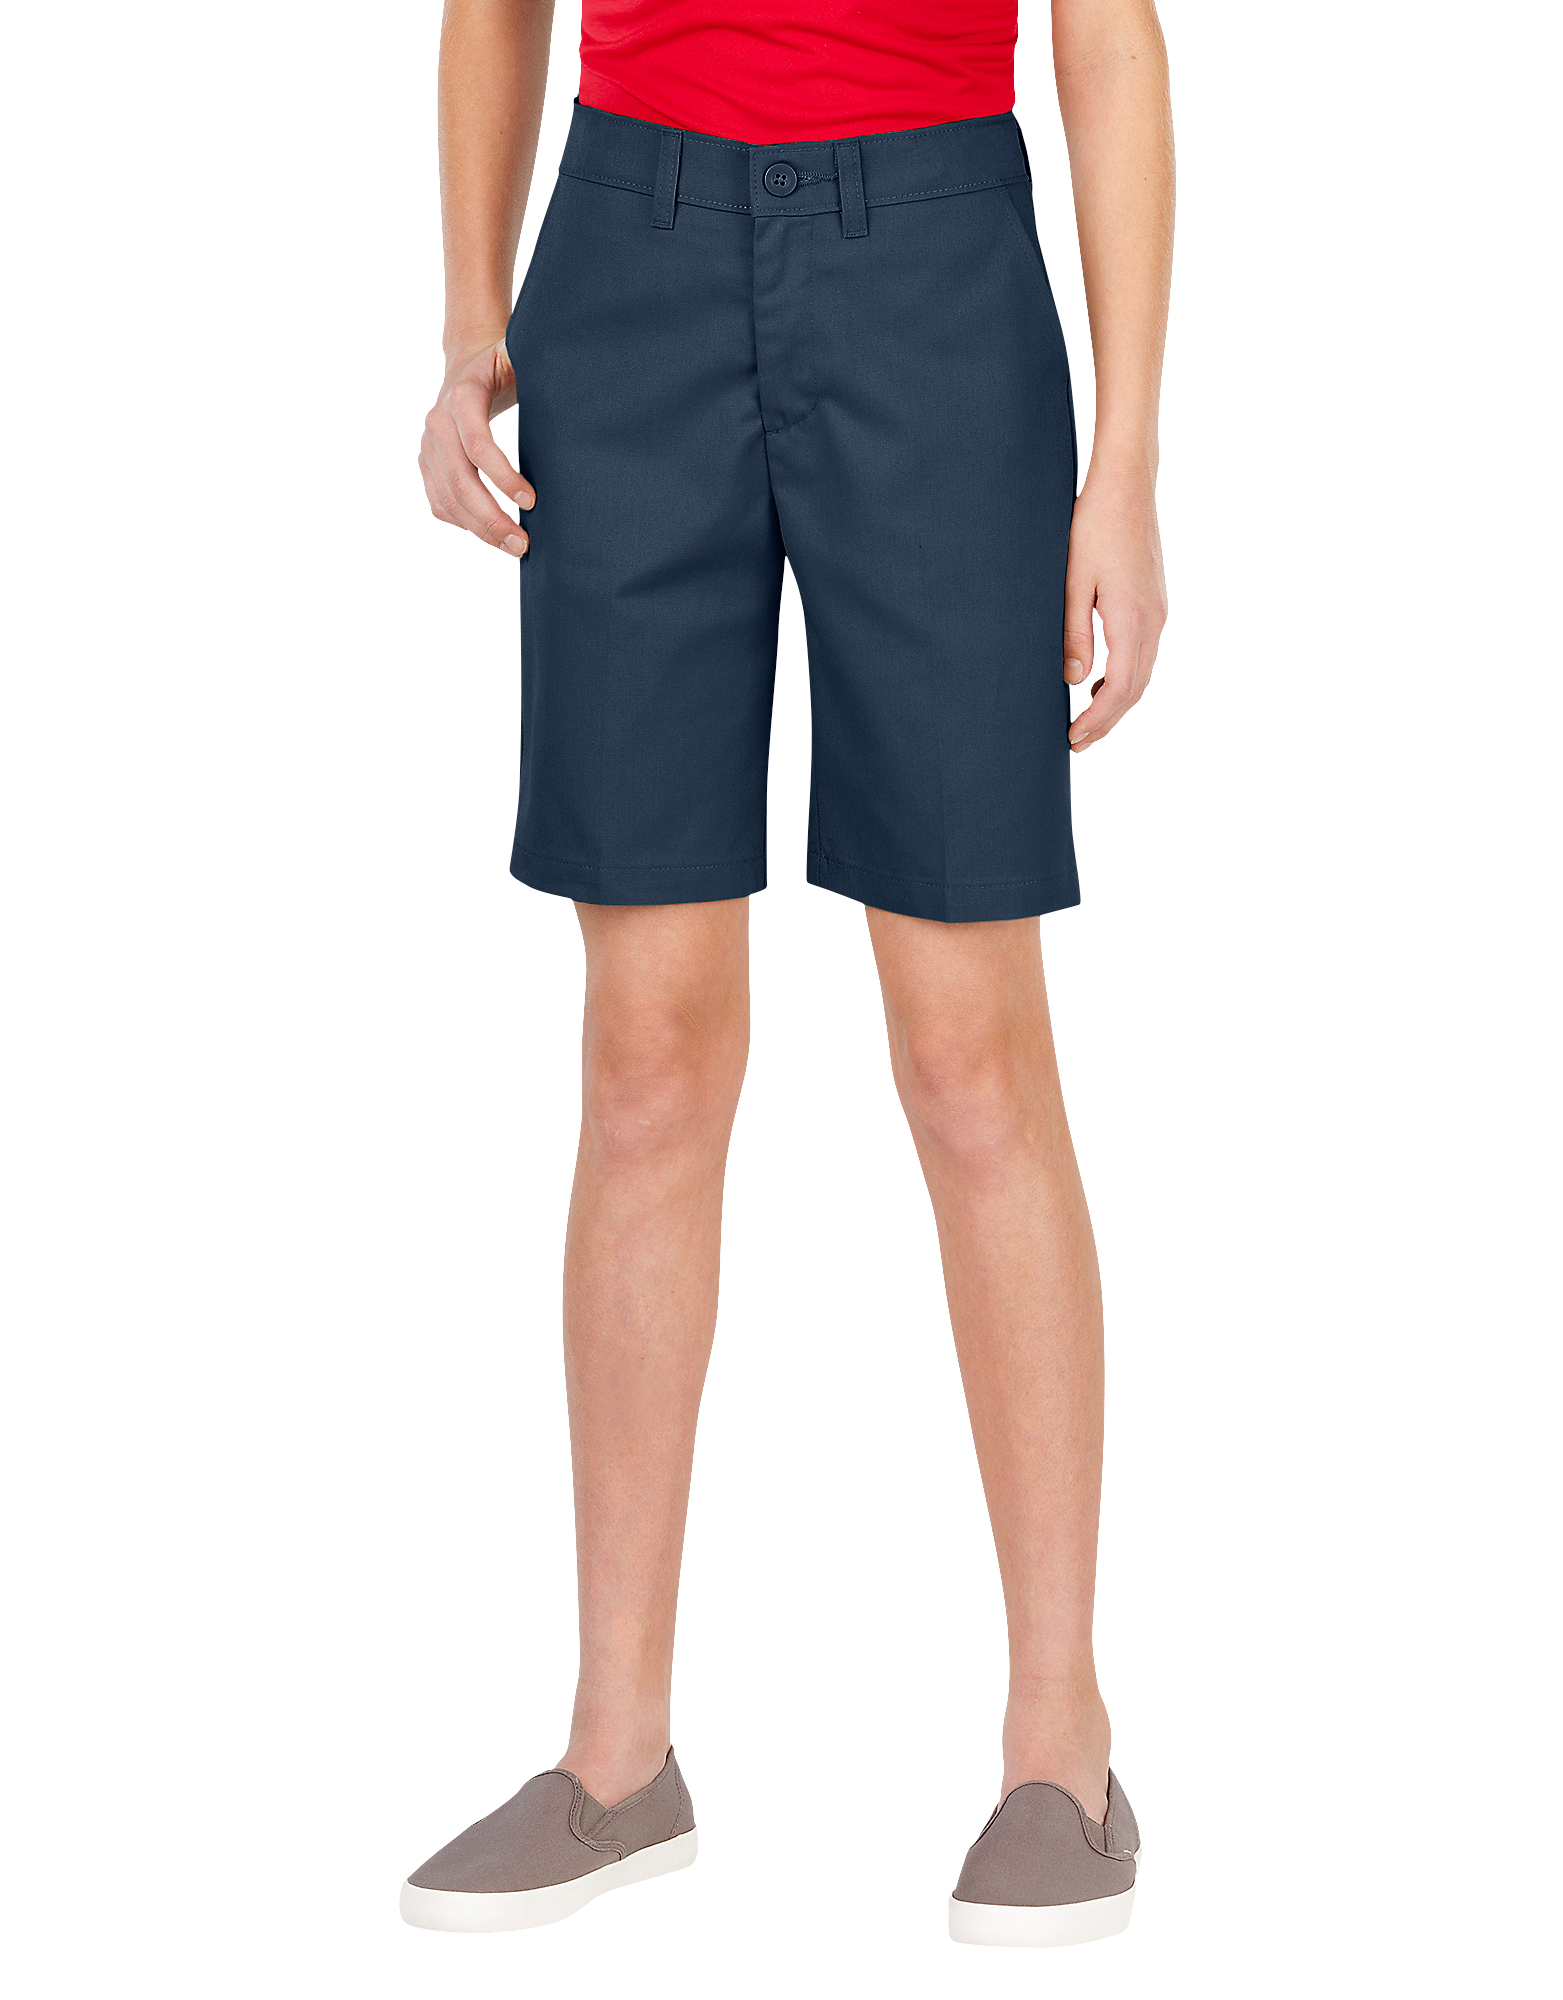 Girls' FlexWaist® Slim Fit Flat Front Shorts, 4-20 - Dark Navy (DN)